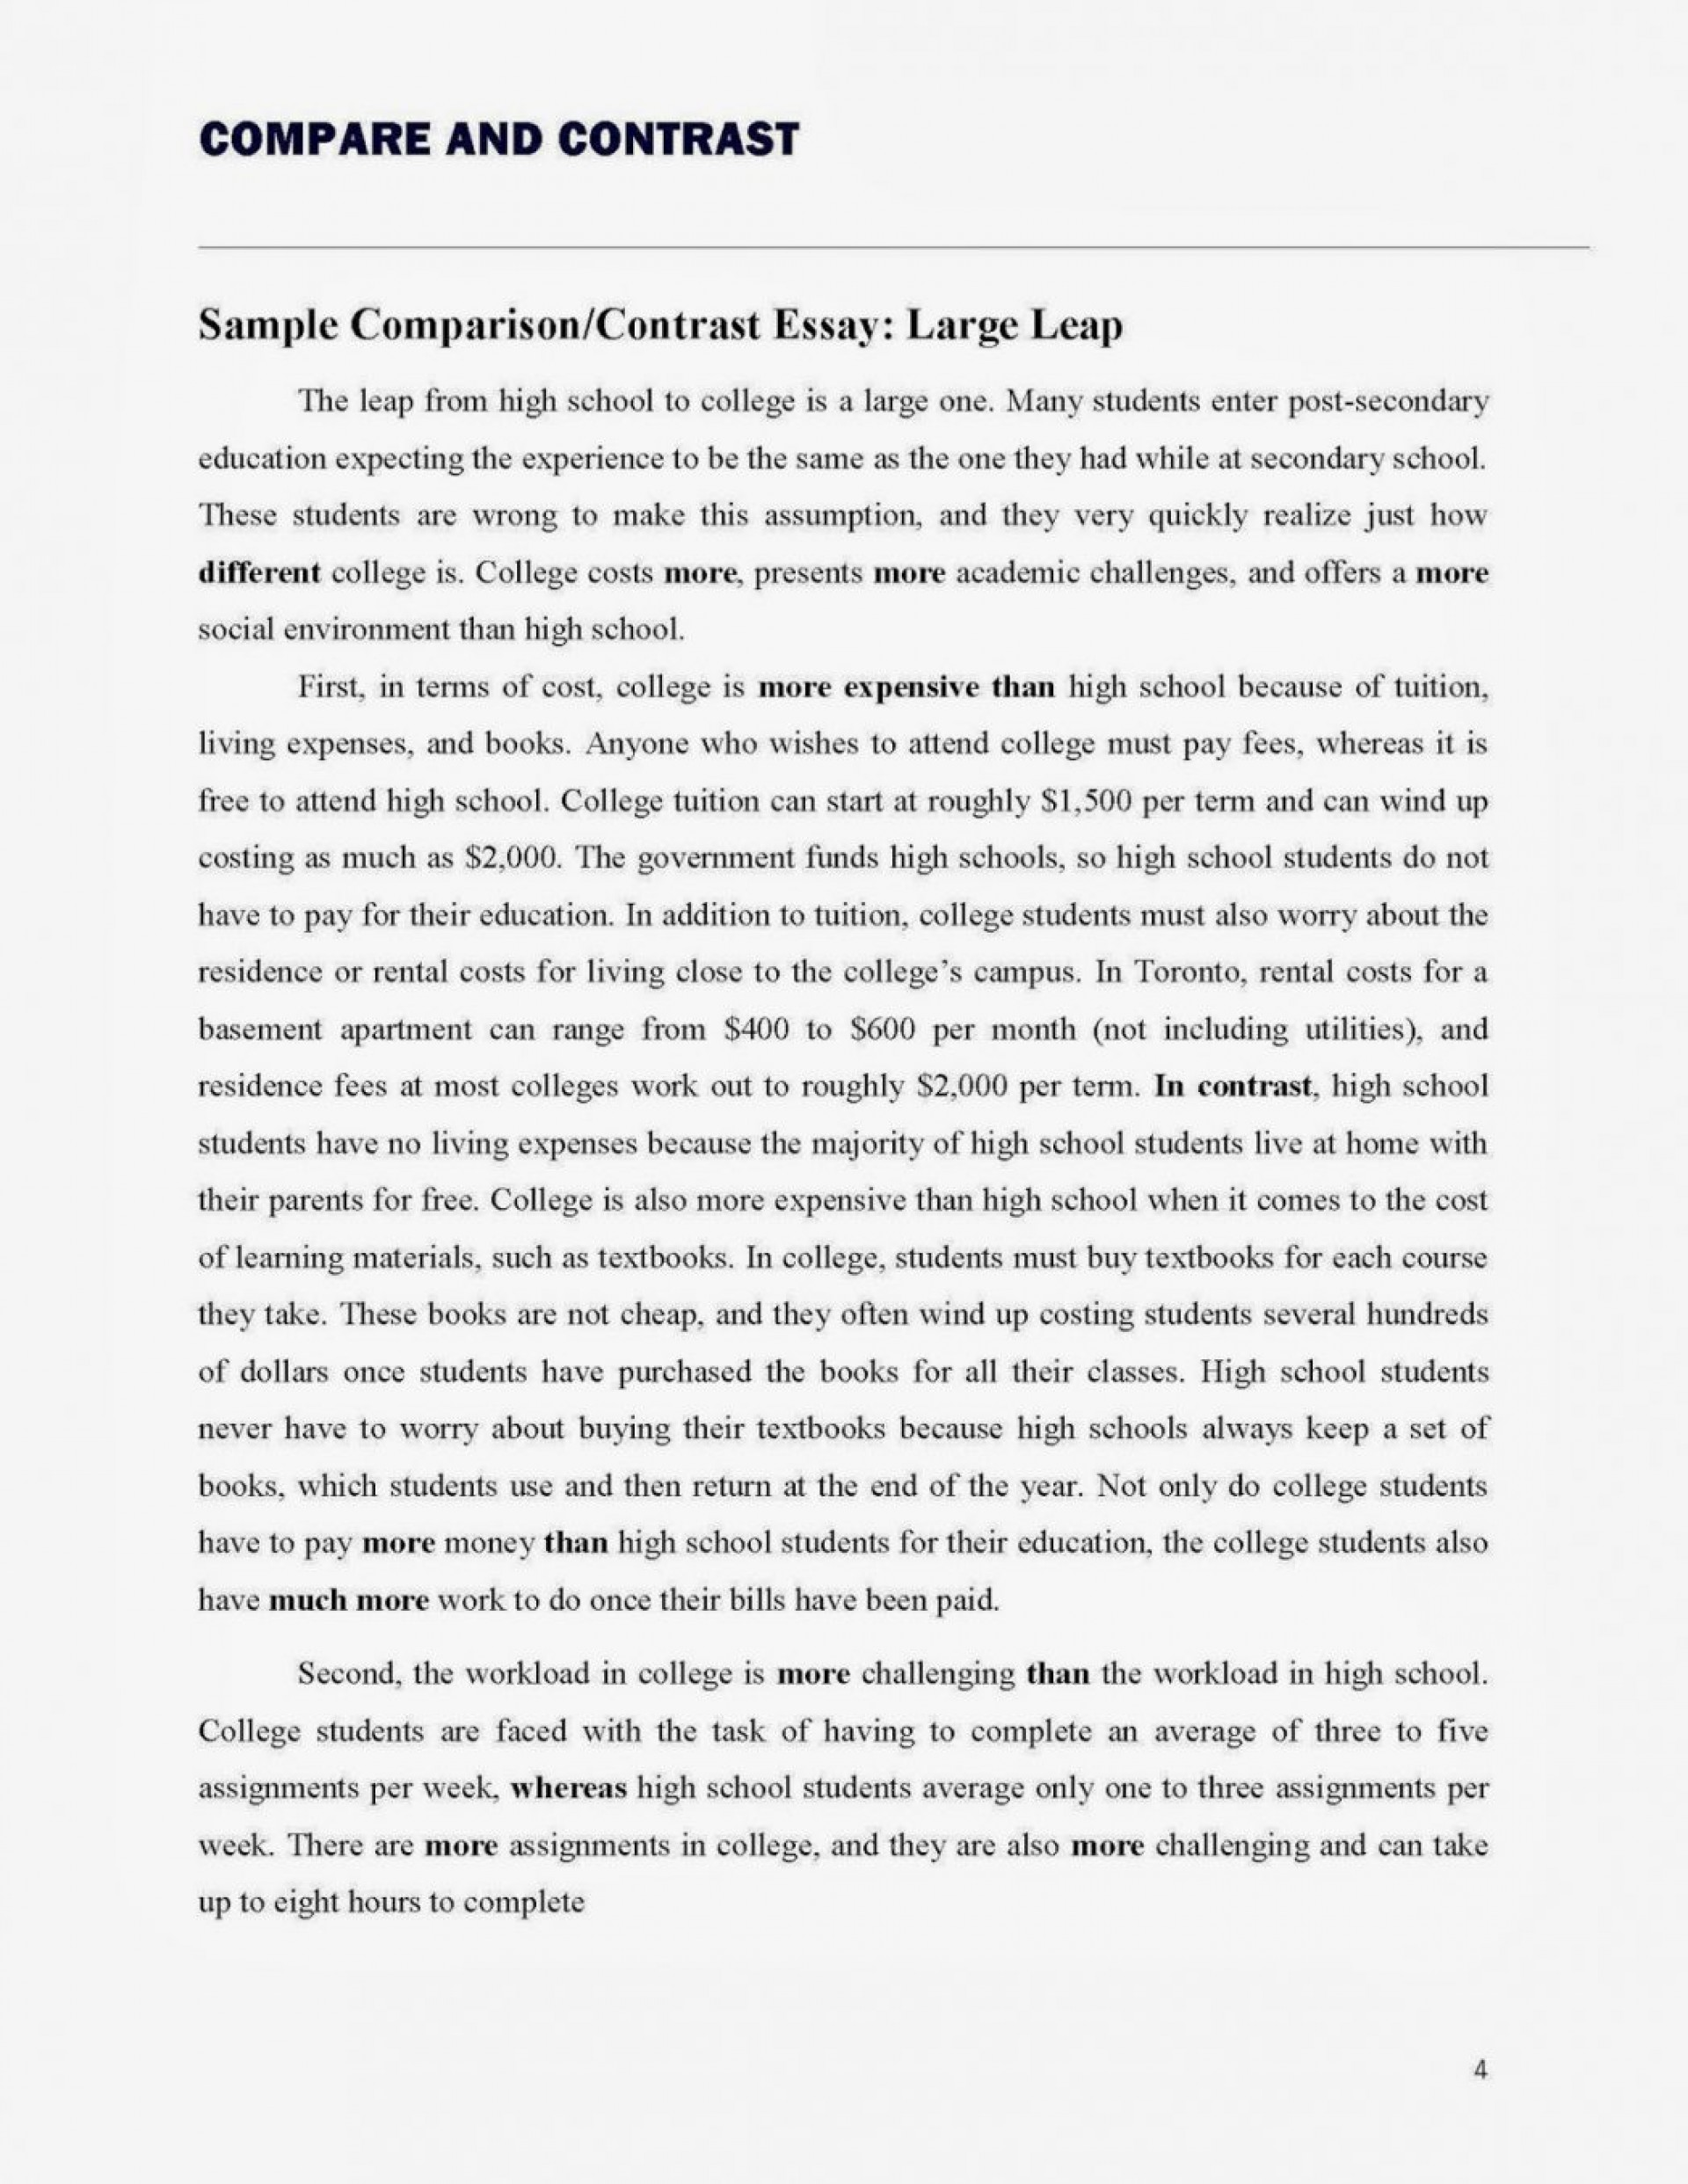 013 Essay Example Oedipus Rex Questions The Giver Topics Virginia Tech 1048x1356 Phenomenal Essays Reddit Prompts 2018 Sat Requirements 1920